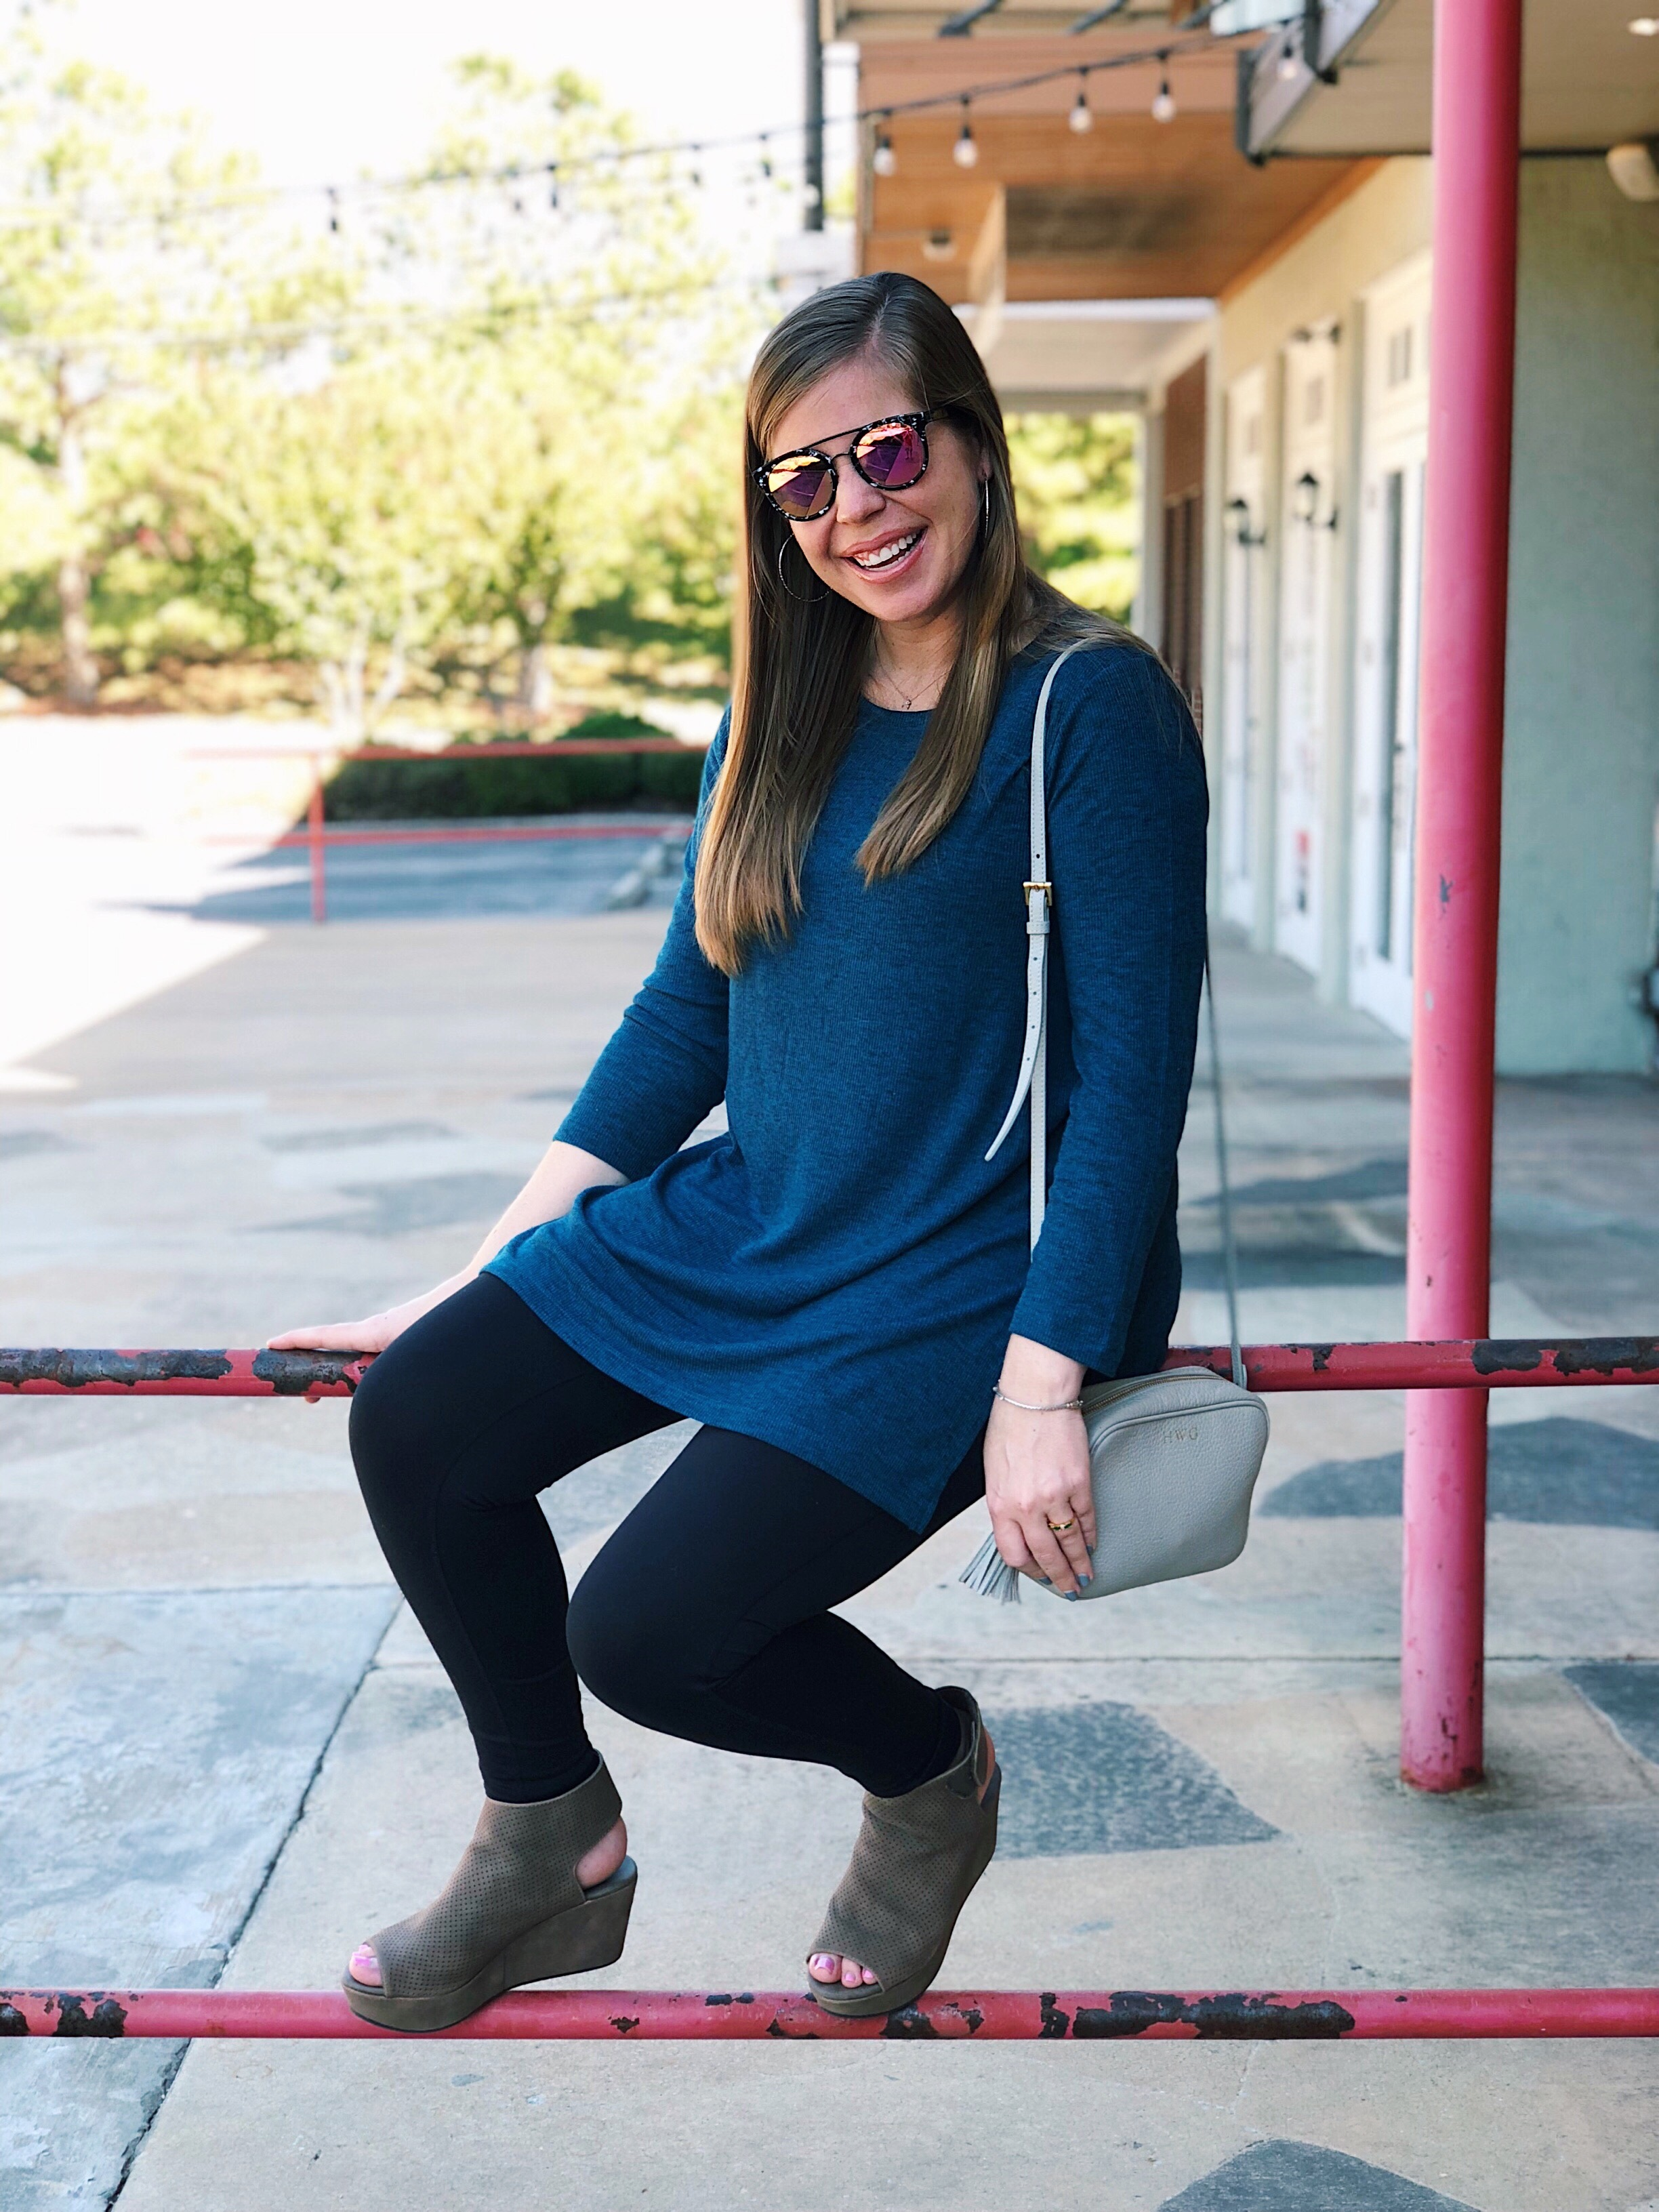 Teal Ribbed Tunic      //      DIFF Sunglasses